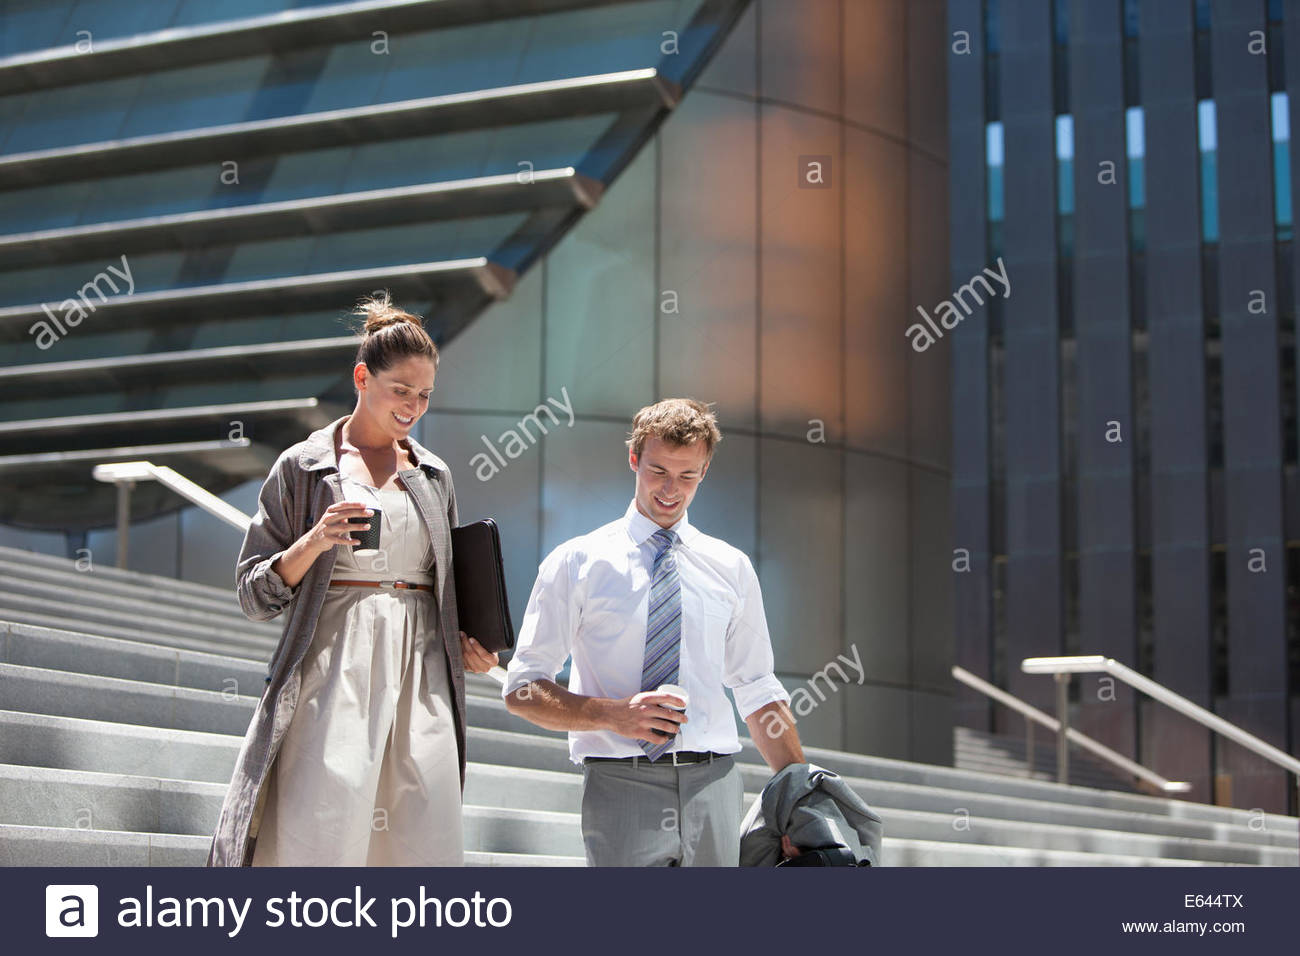 Business people walking down steps outdoors Stock Photo